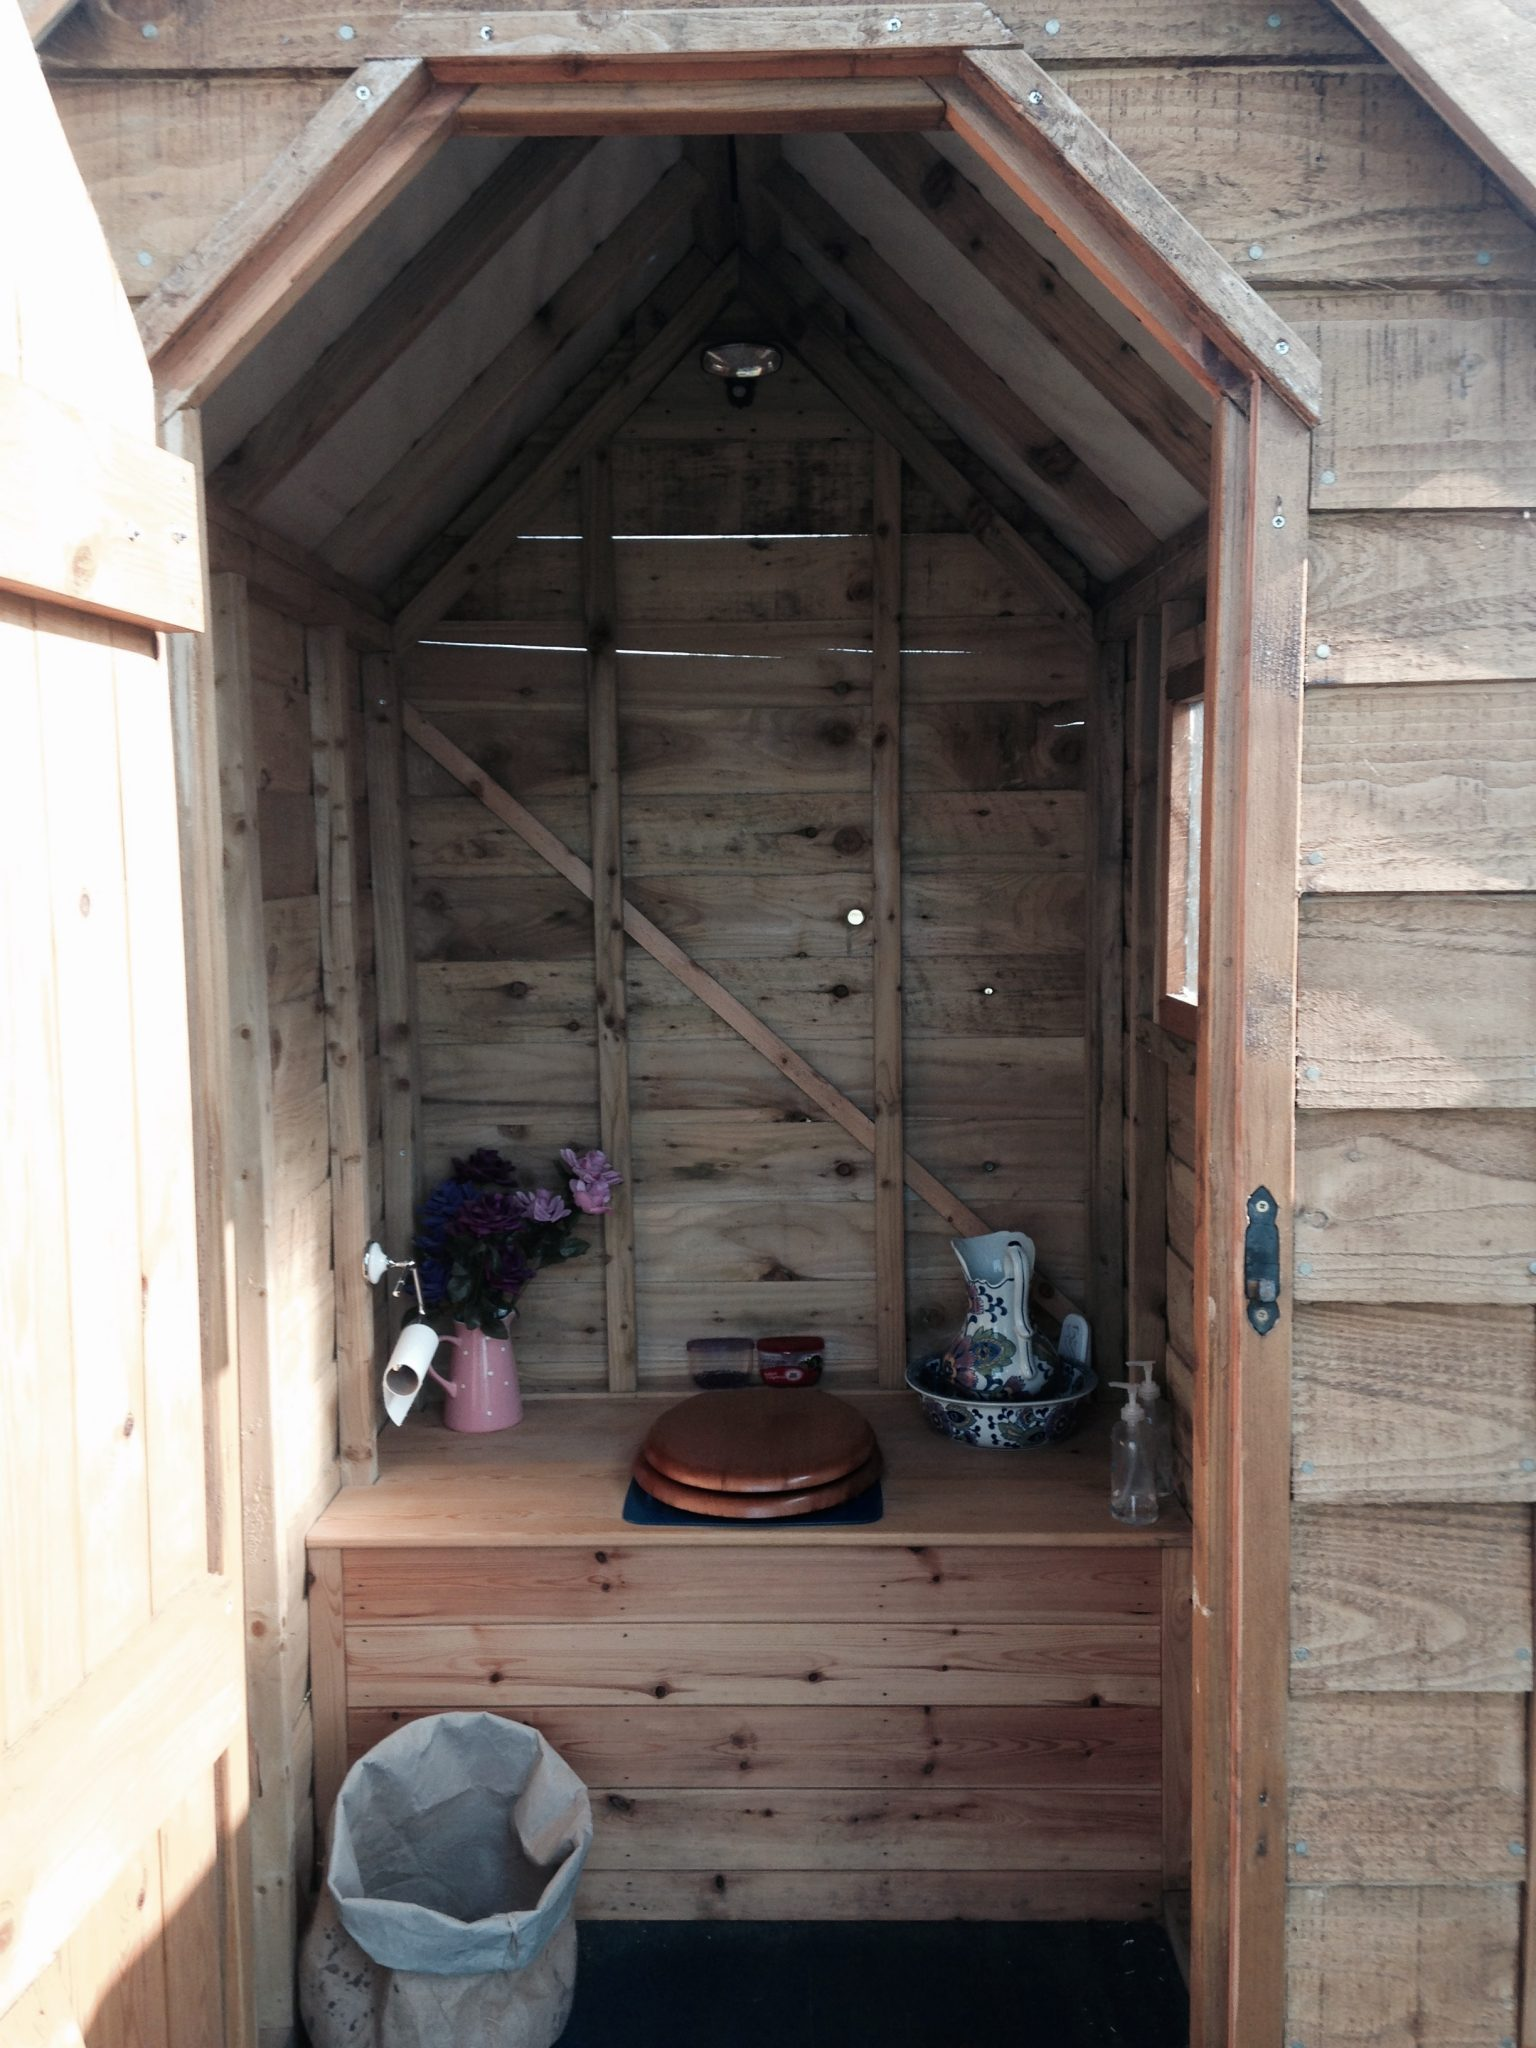 Eco toilet at the Secret Cloud House Holidays Glamping site